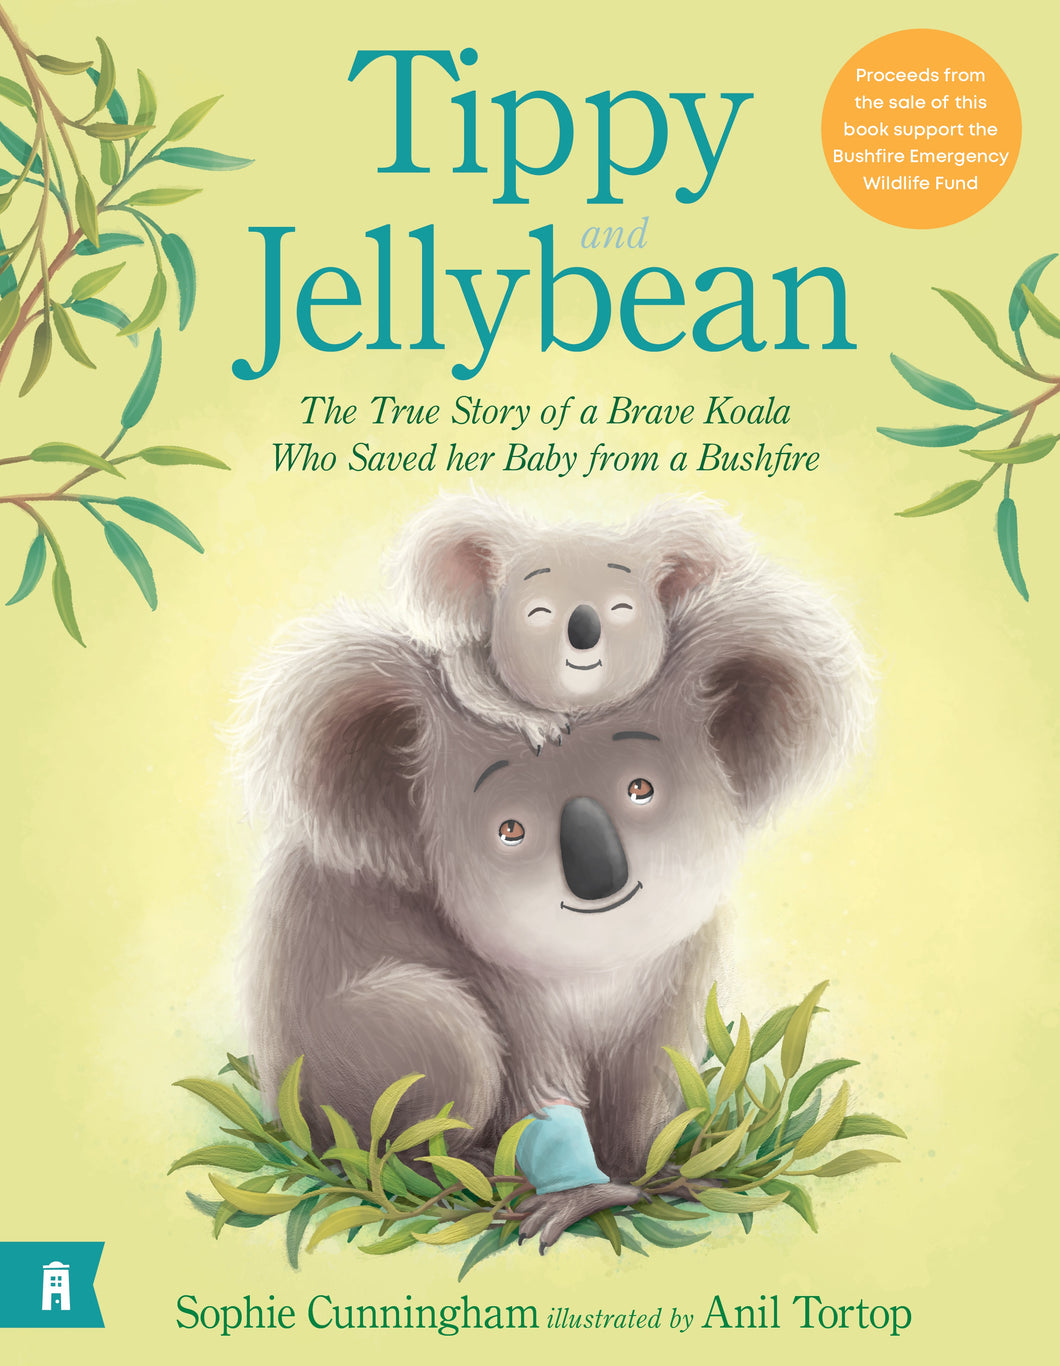 Tippy and Jellybean - The True Story of a Brave Koala who Saved her Baby from a Bushfire